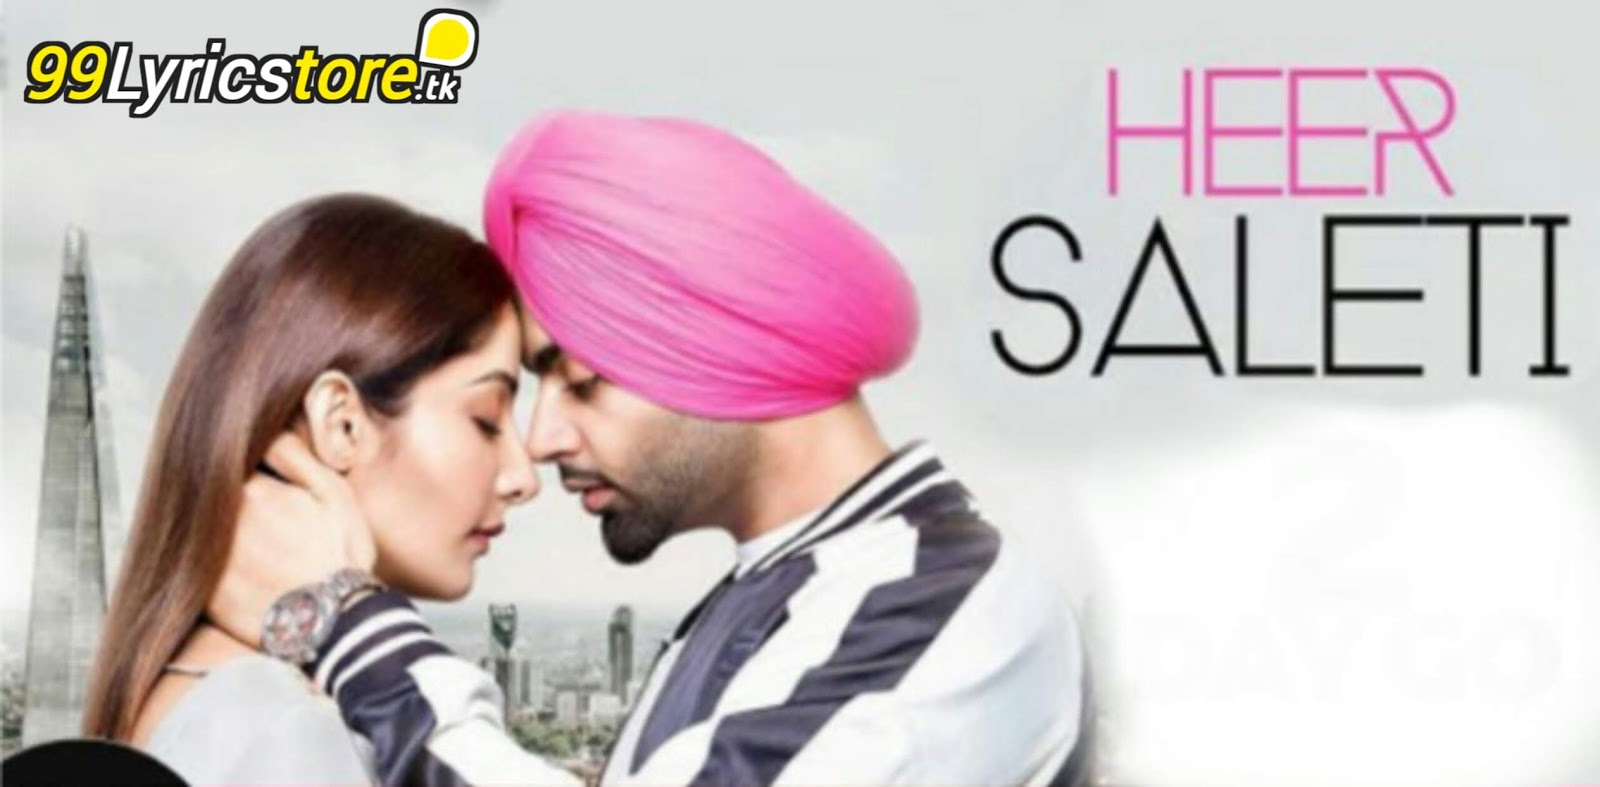 HEER SALETI LYRICS – Jordan Sandhu ft. Sonia Maan | The Boss | Bunty Bains | Latest Punjabi Song 2018, Jordan Sandhu Song Lyrics, Top Punjabi Song Lyrics, New Punjabi Song 2018